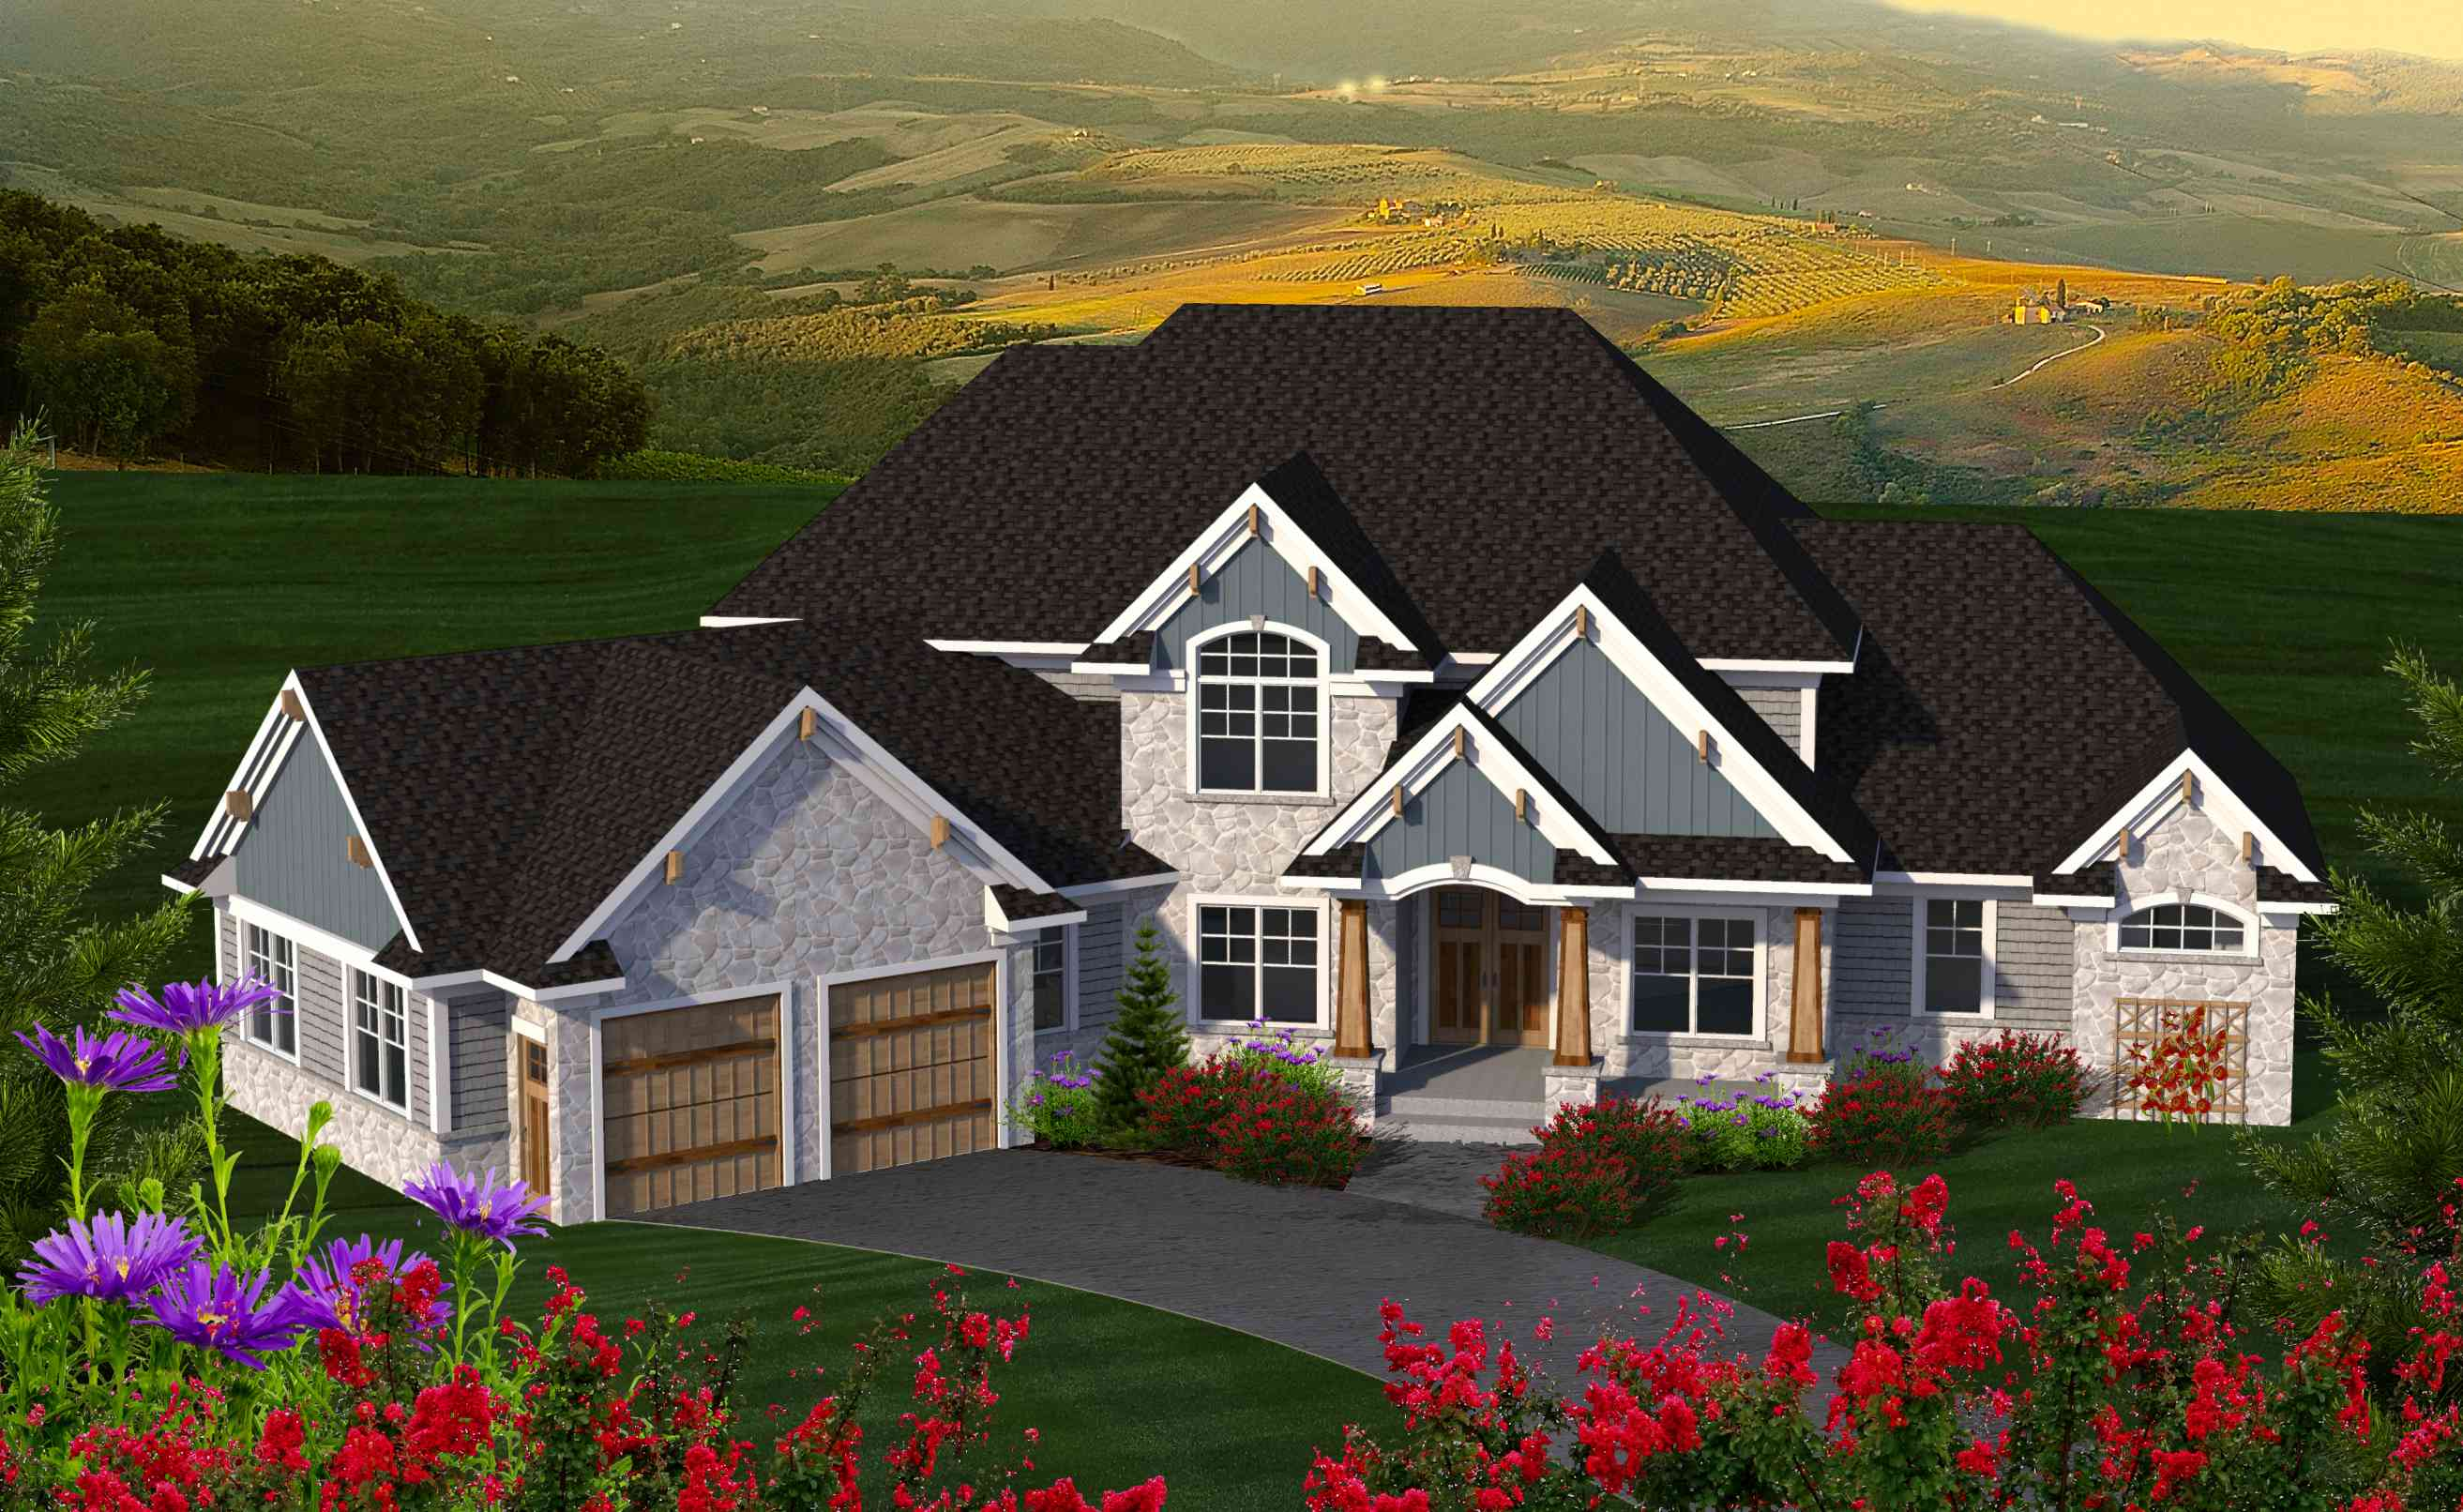 4 Bed House Plan with Angled Garage  89977AH  1st Floor Master Suite Butler Walkin Pantry